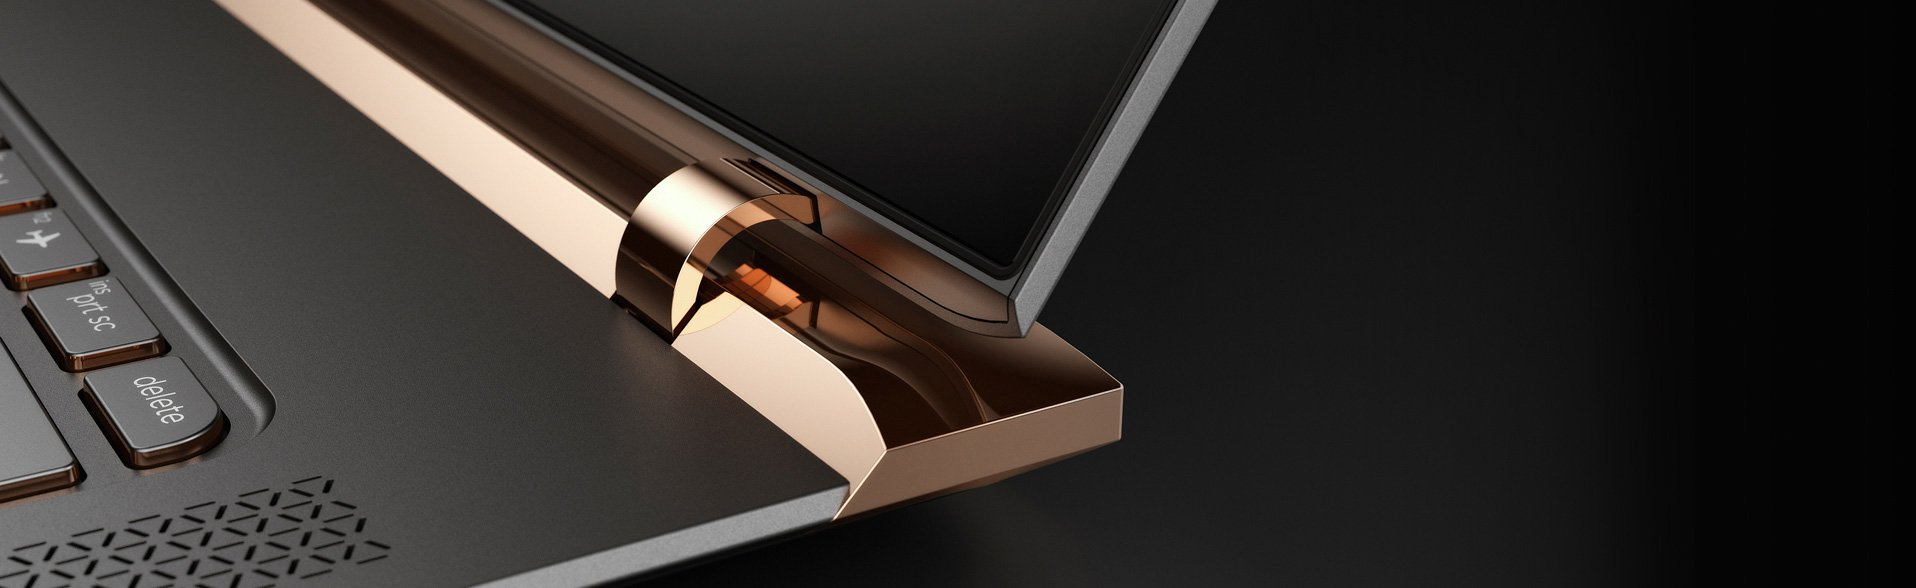 The HP Spectre is the World's Most Beautiful Laptop - TechieReader